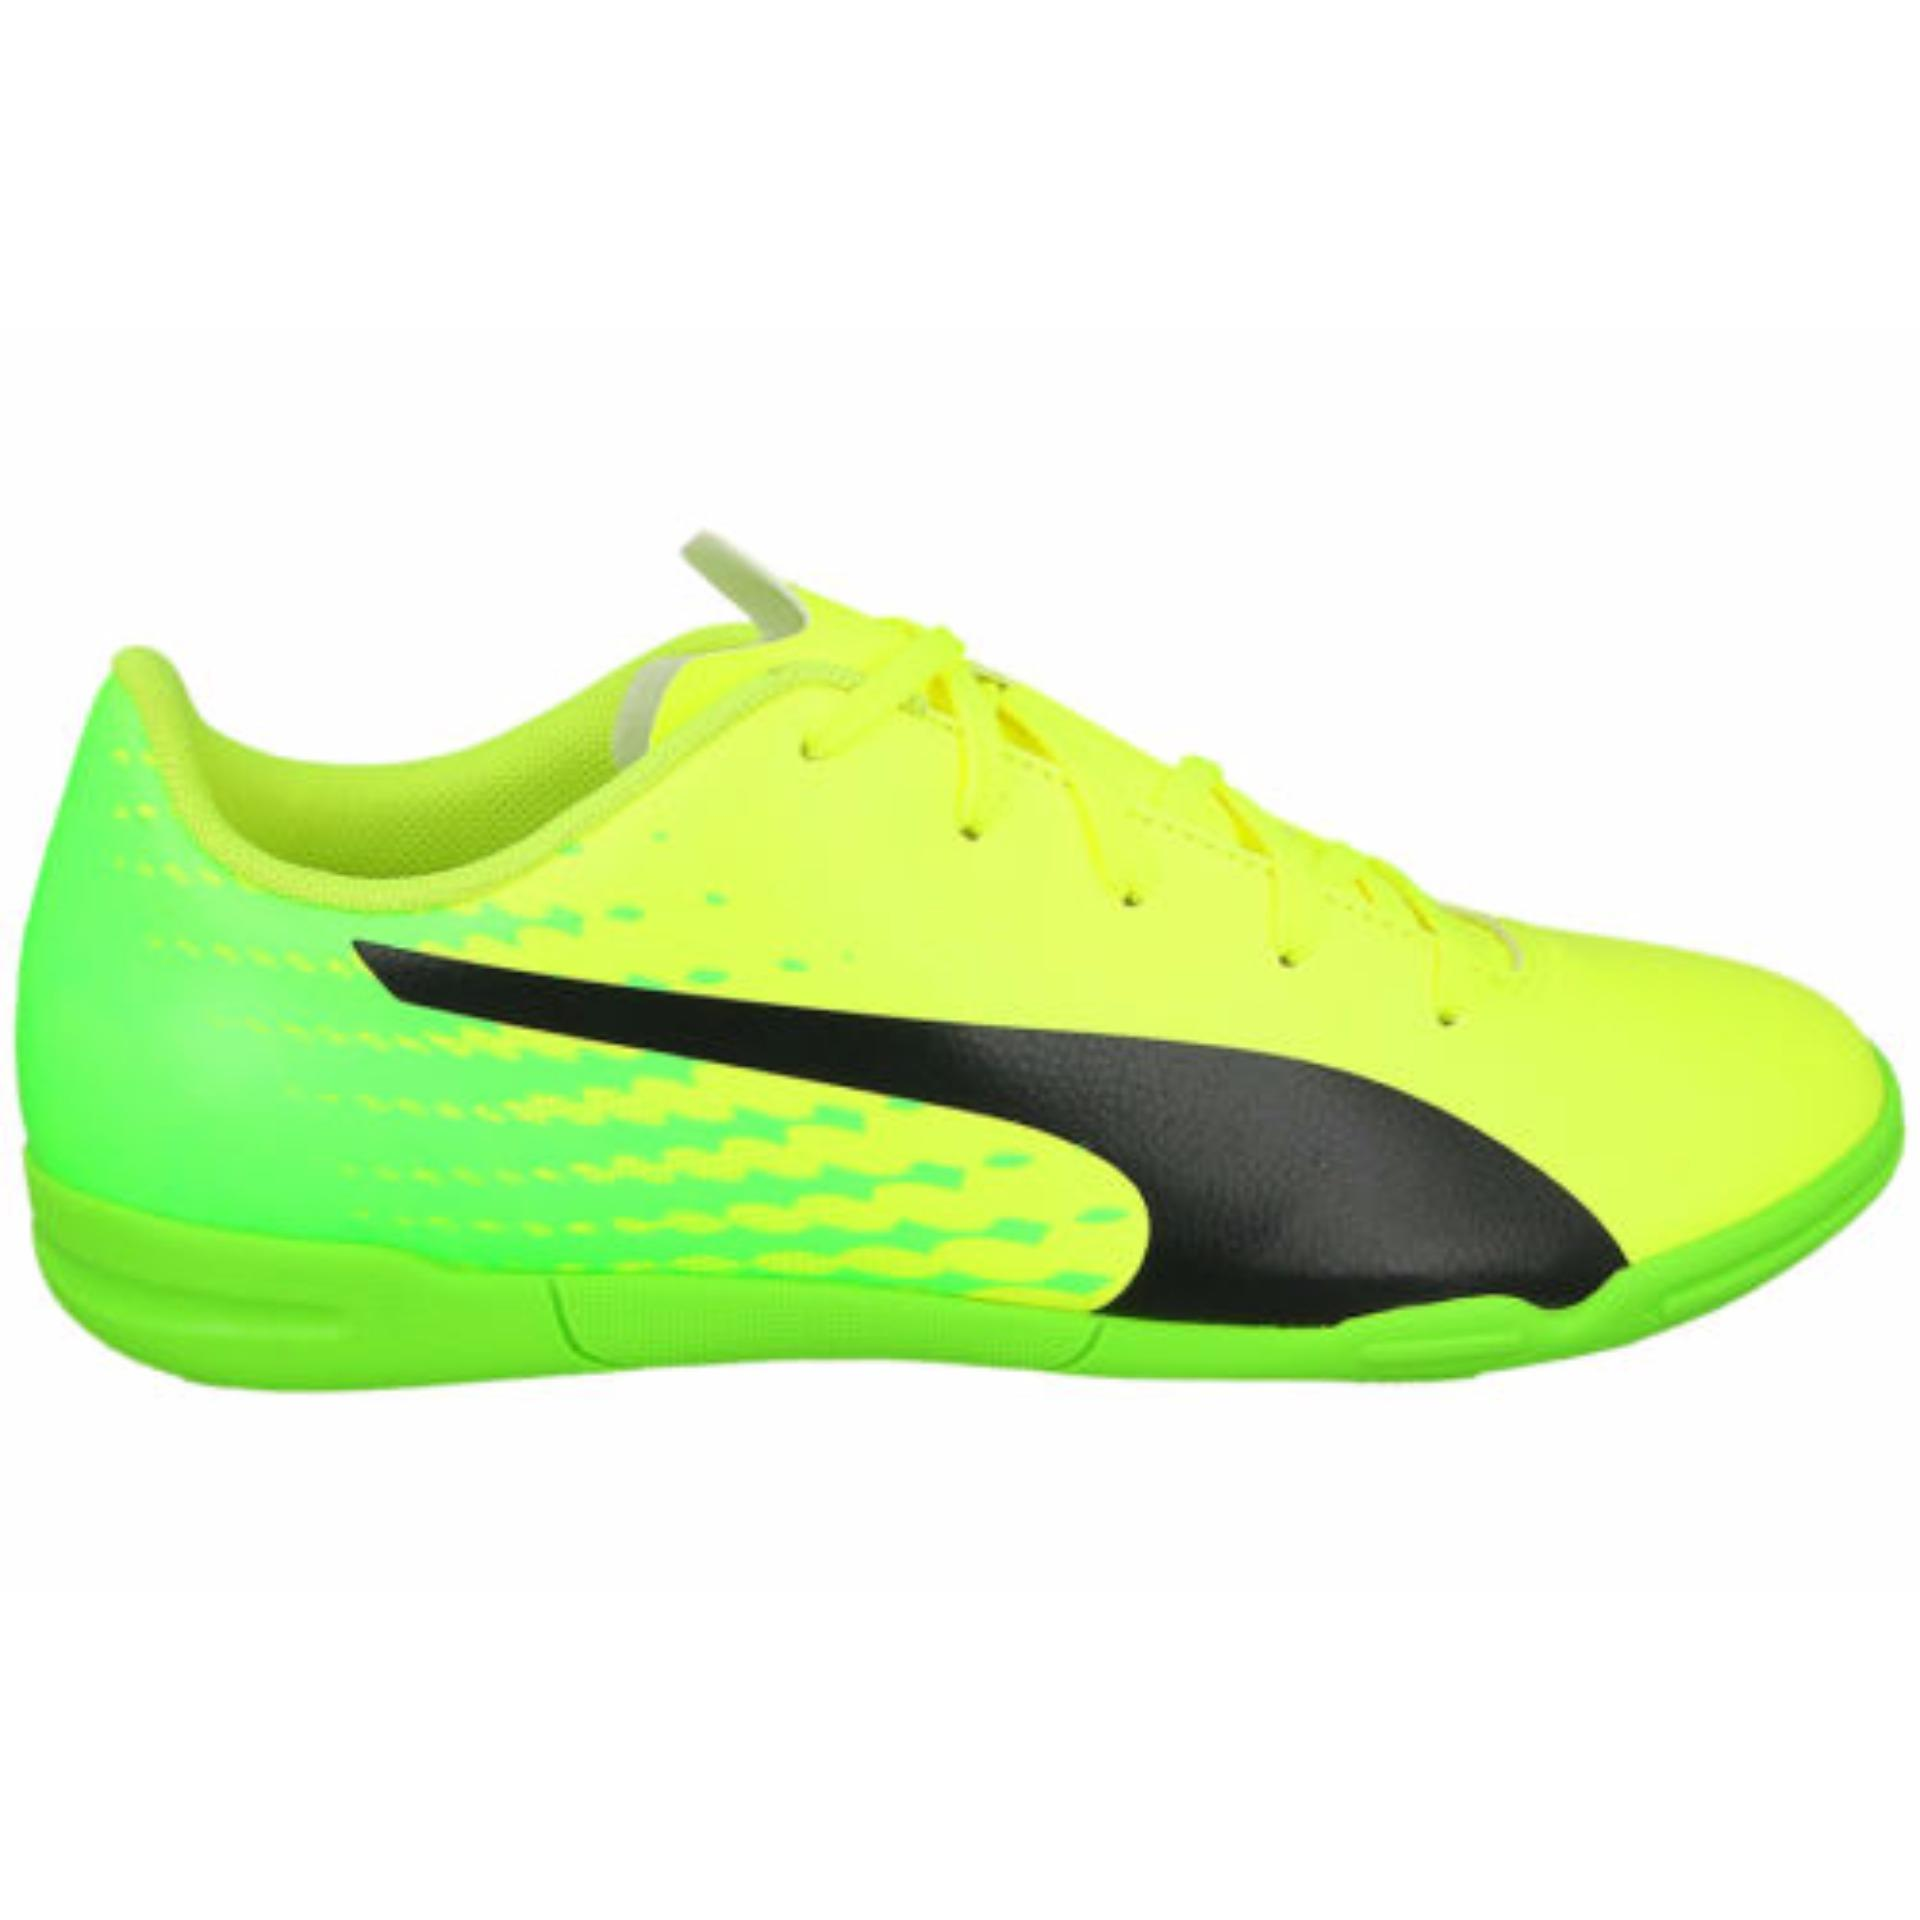 Toko Puma Evospeed 17 5 It Sepatu Futsal Yellow Black Green 104027 01 Murah Indonesia